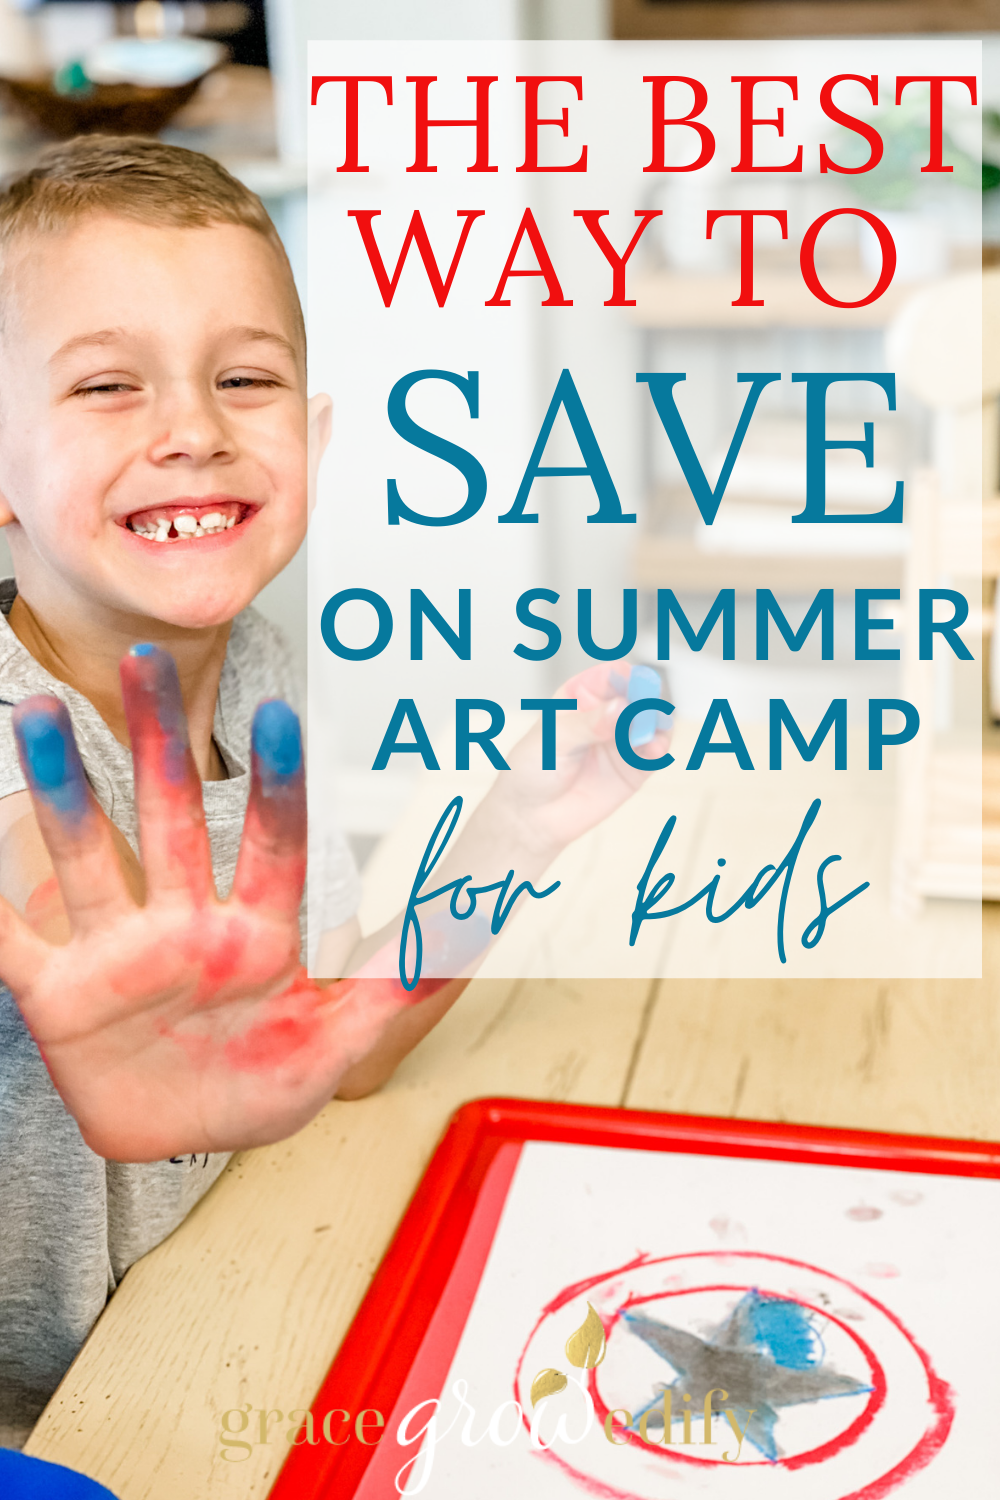 Save this summer with online art camp for kids! With access to over 600 art lessons and tons of fun planned, you can't go wrong. Get a year of online art curriculum for the same price as a week of art camp! #homeschoolart #summercamp #onlineartclass #artclassesforkids